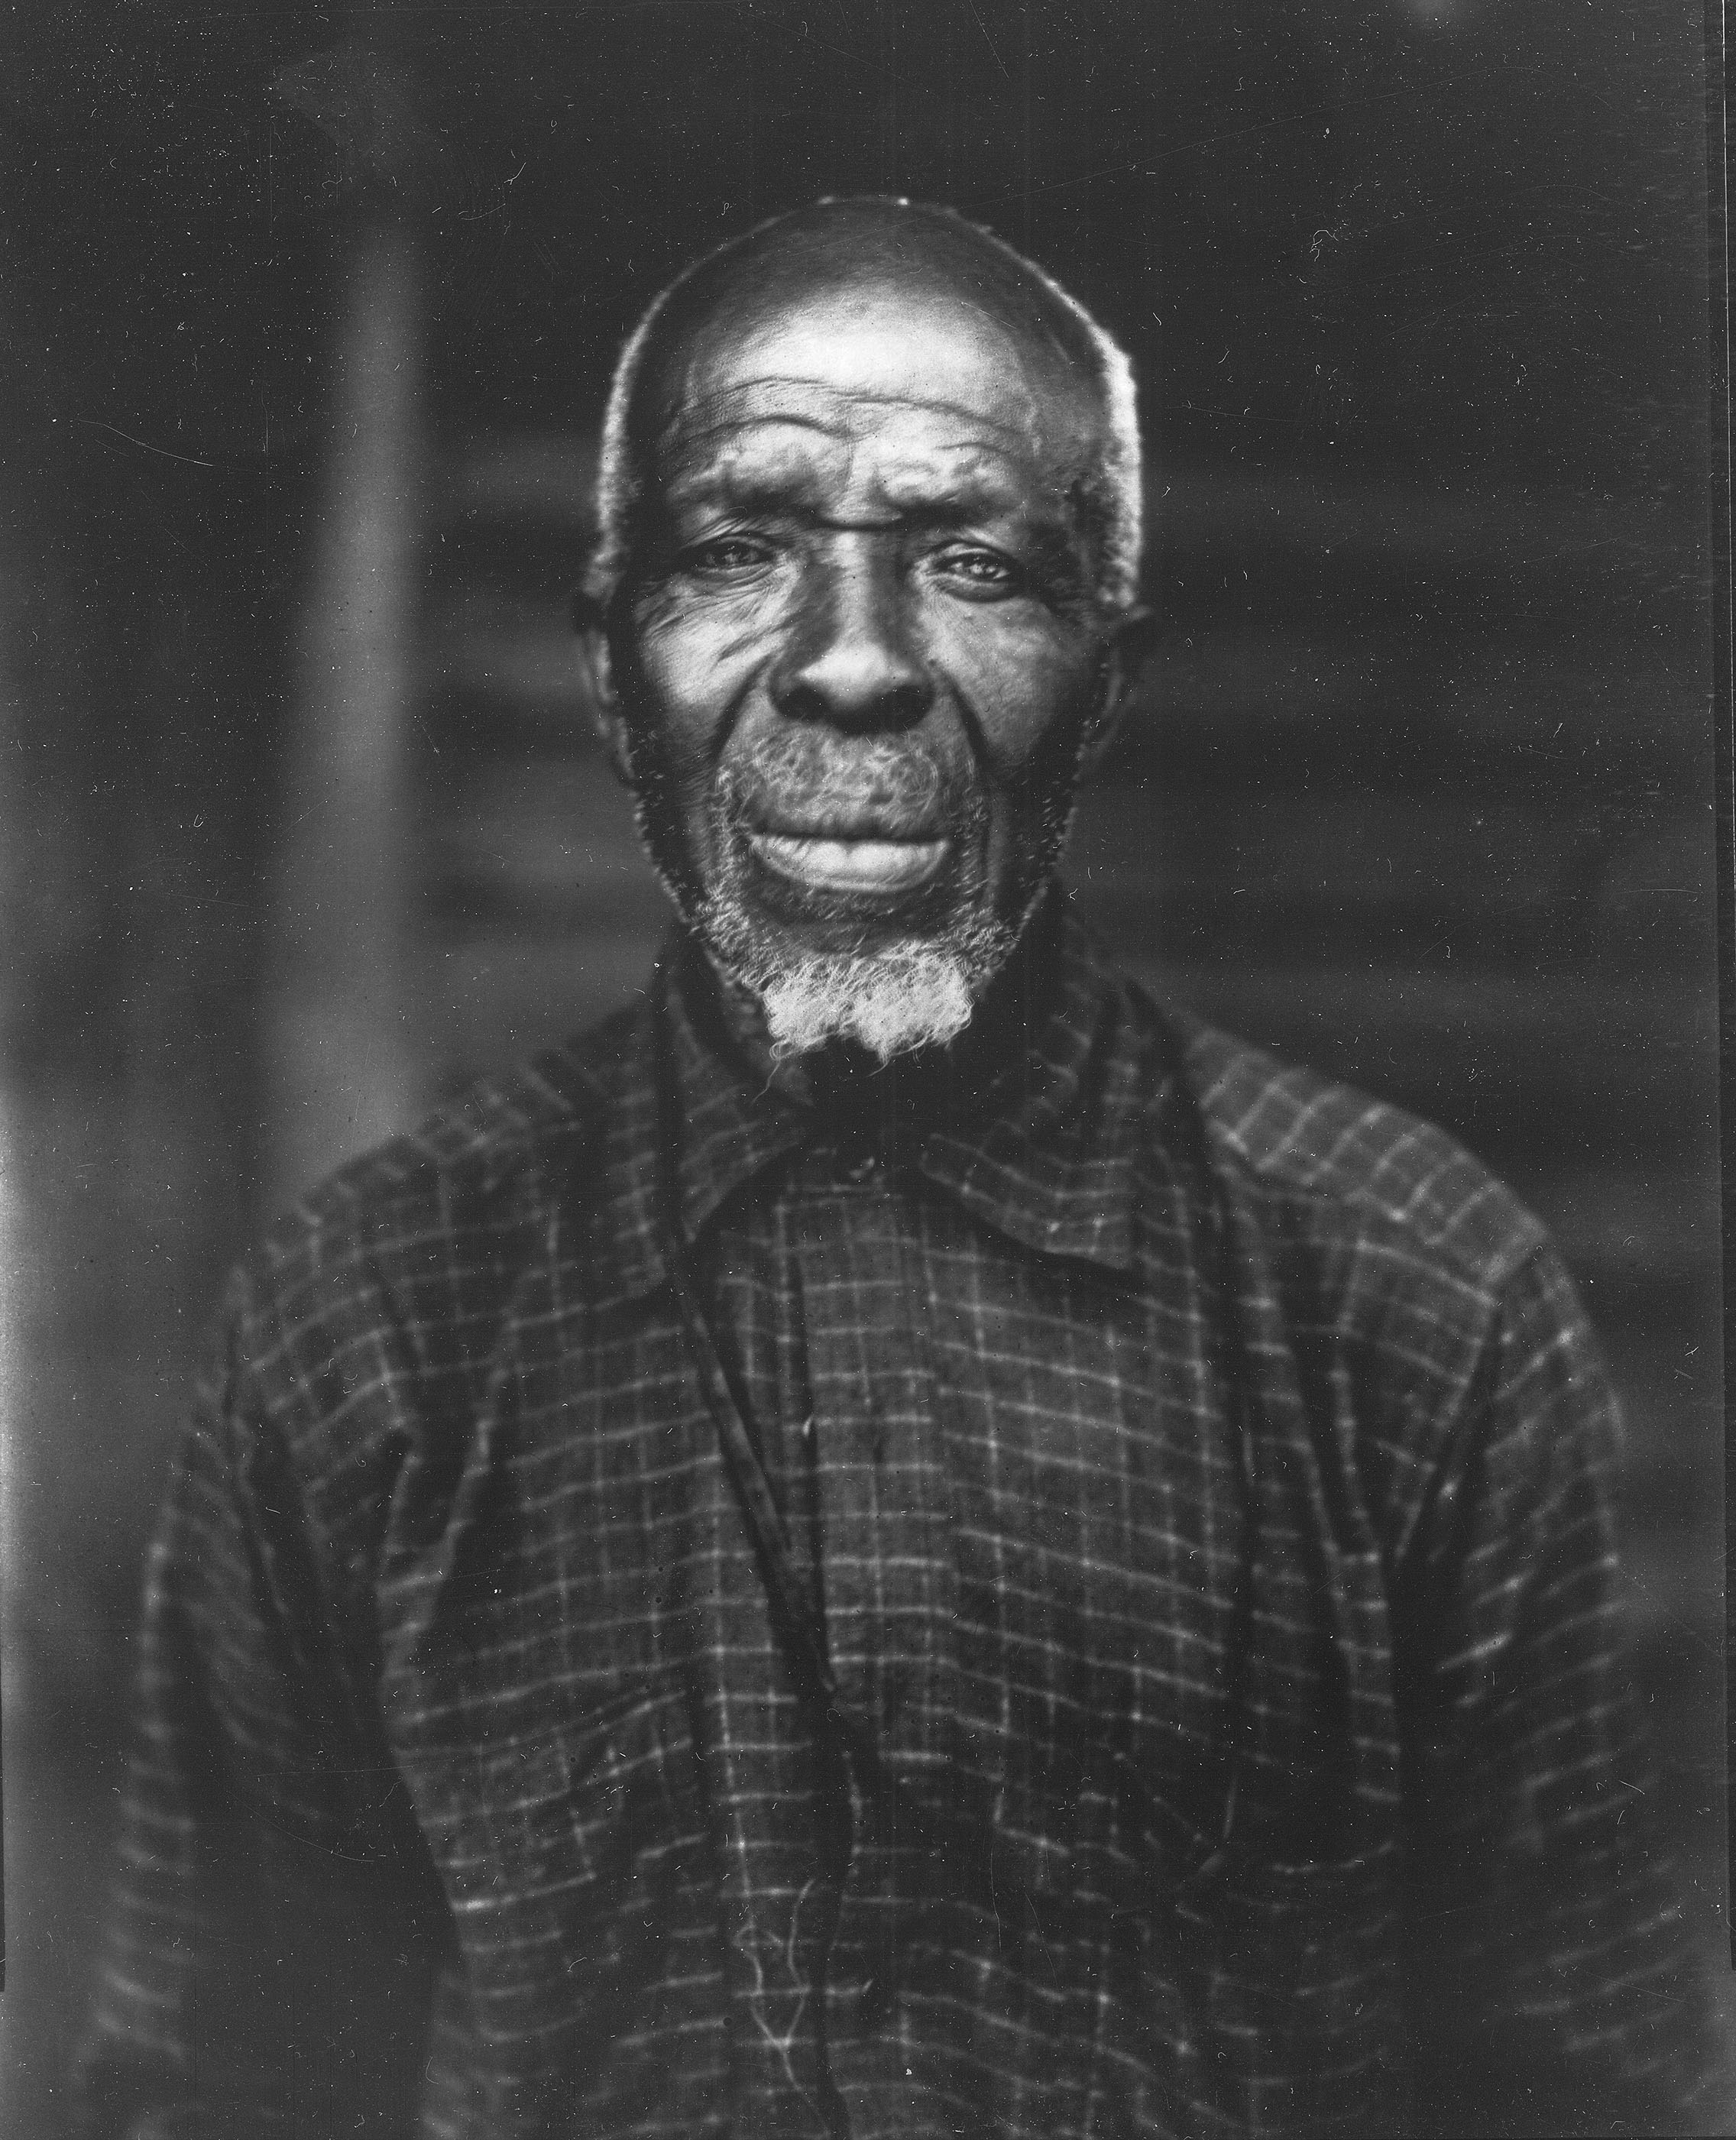 The Last Slave Ship Survivor Gave an Interview in the 1930s. It Just Surfaced